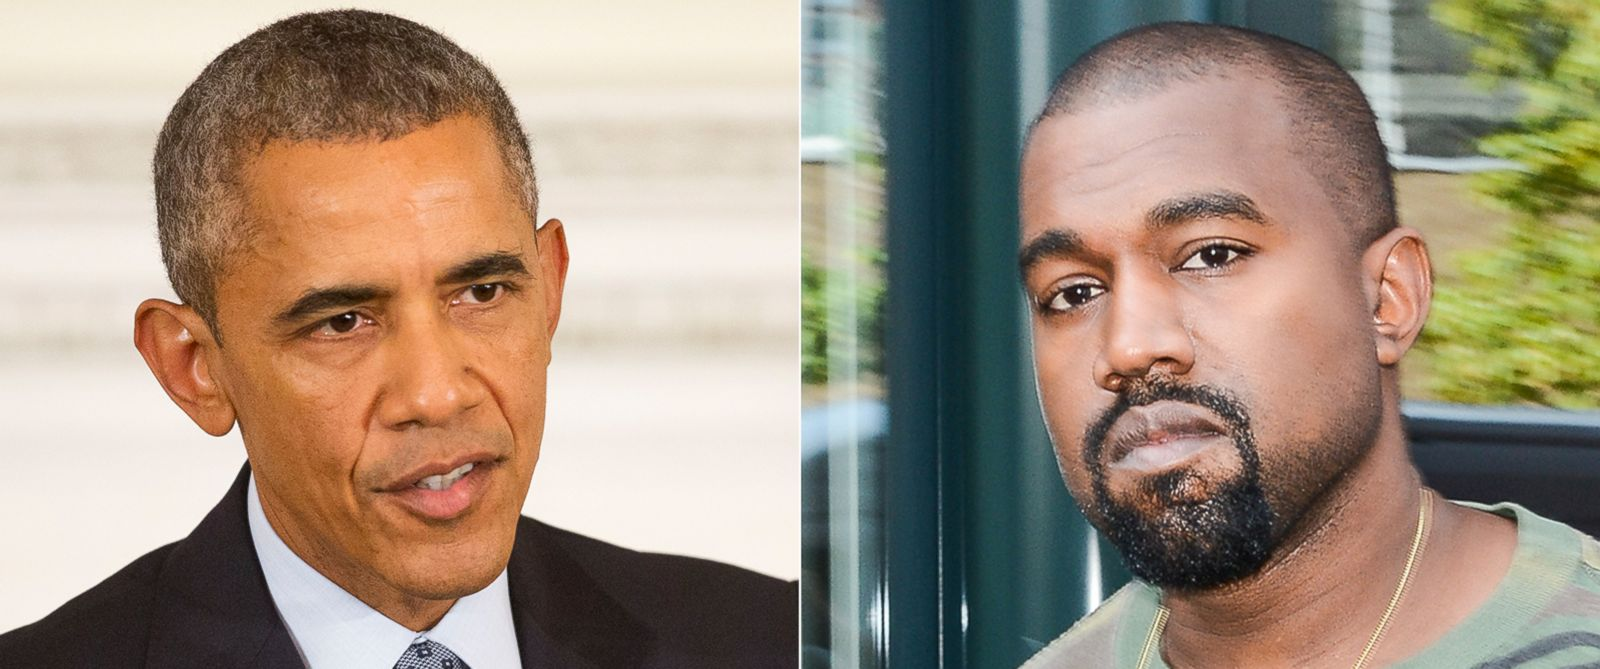 PHOTO: (L-R) President Barack Obama in Washington, Oct. 2, 2015. | Kanye West in New York City, Sept. 9, 2015.